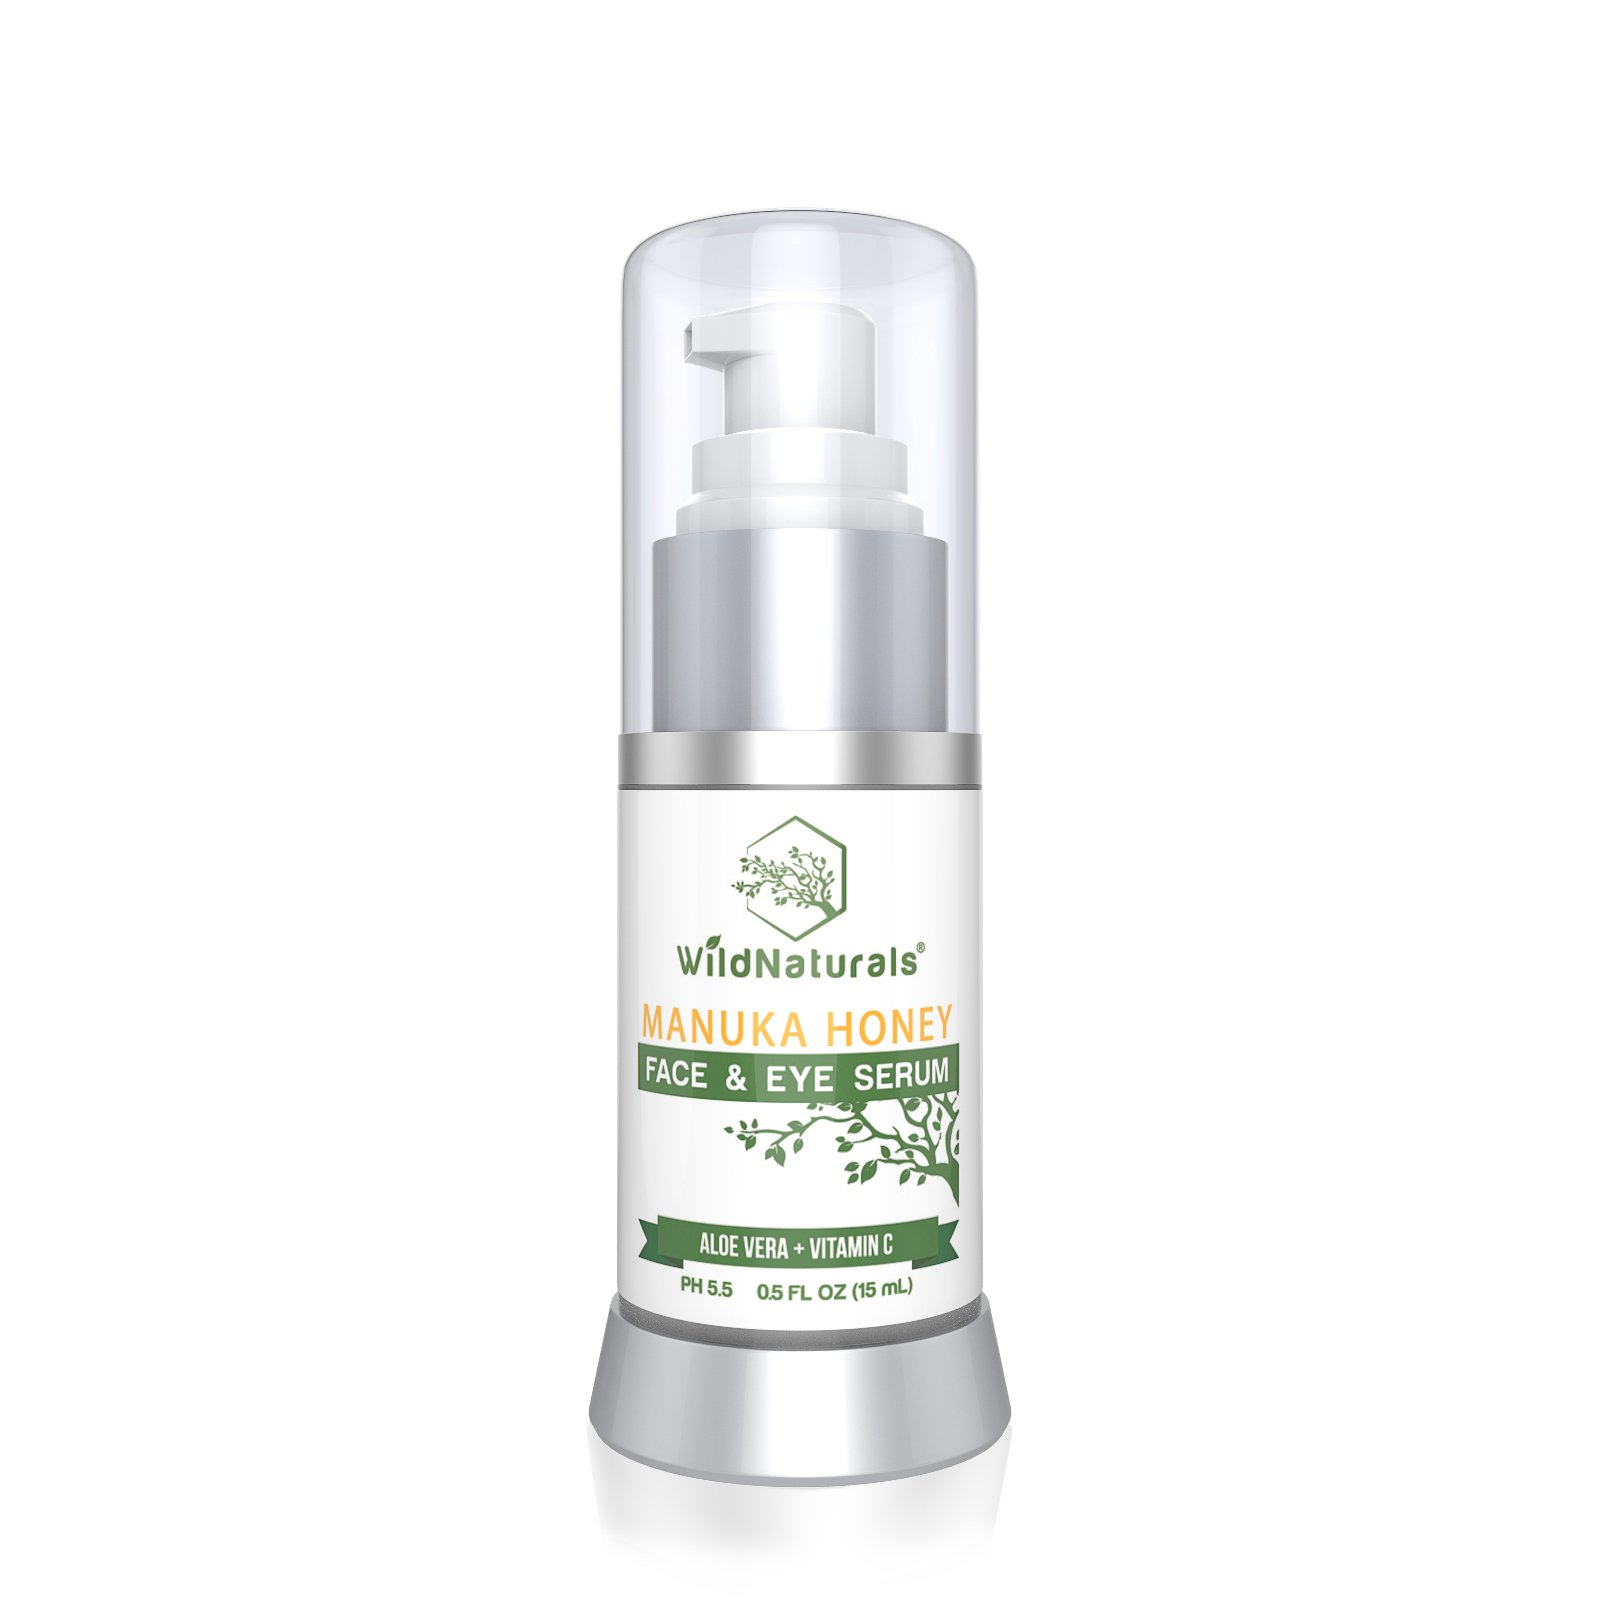 Wild Naturals Anti Aging Serum : With Manuka Honey + Vitamin C + Hyaluronic Acid + Aloe Vera, Facial Moisturizer Reduces Fine Lines, Wrinkles, Dark Circles and Puffy Eyes, For Face, Neck + Decollete